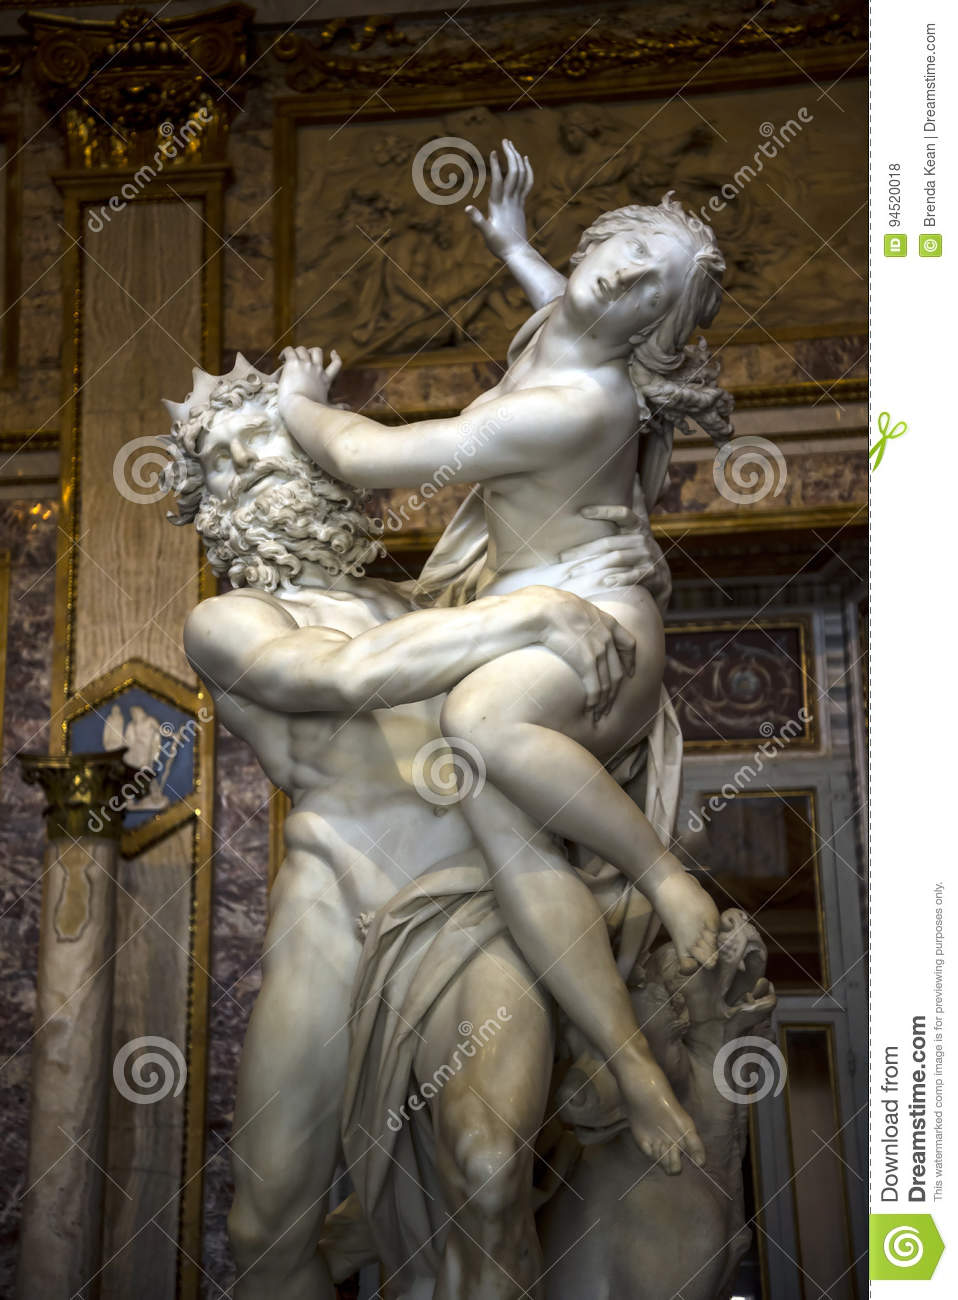 Sculpture By Gian Lorenzo Bernini In The Borghese Collection